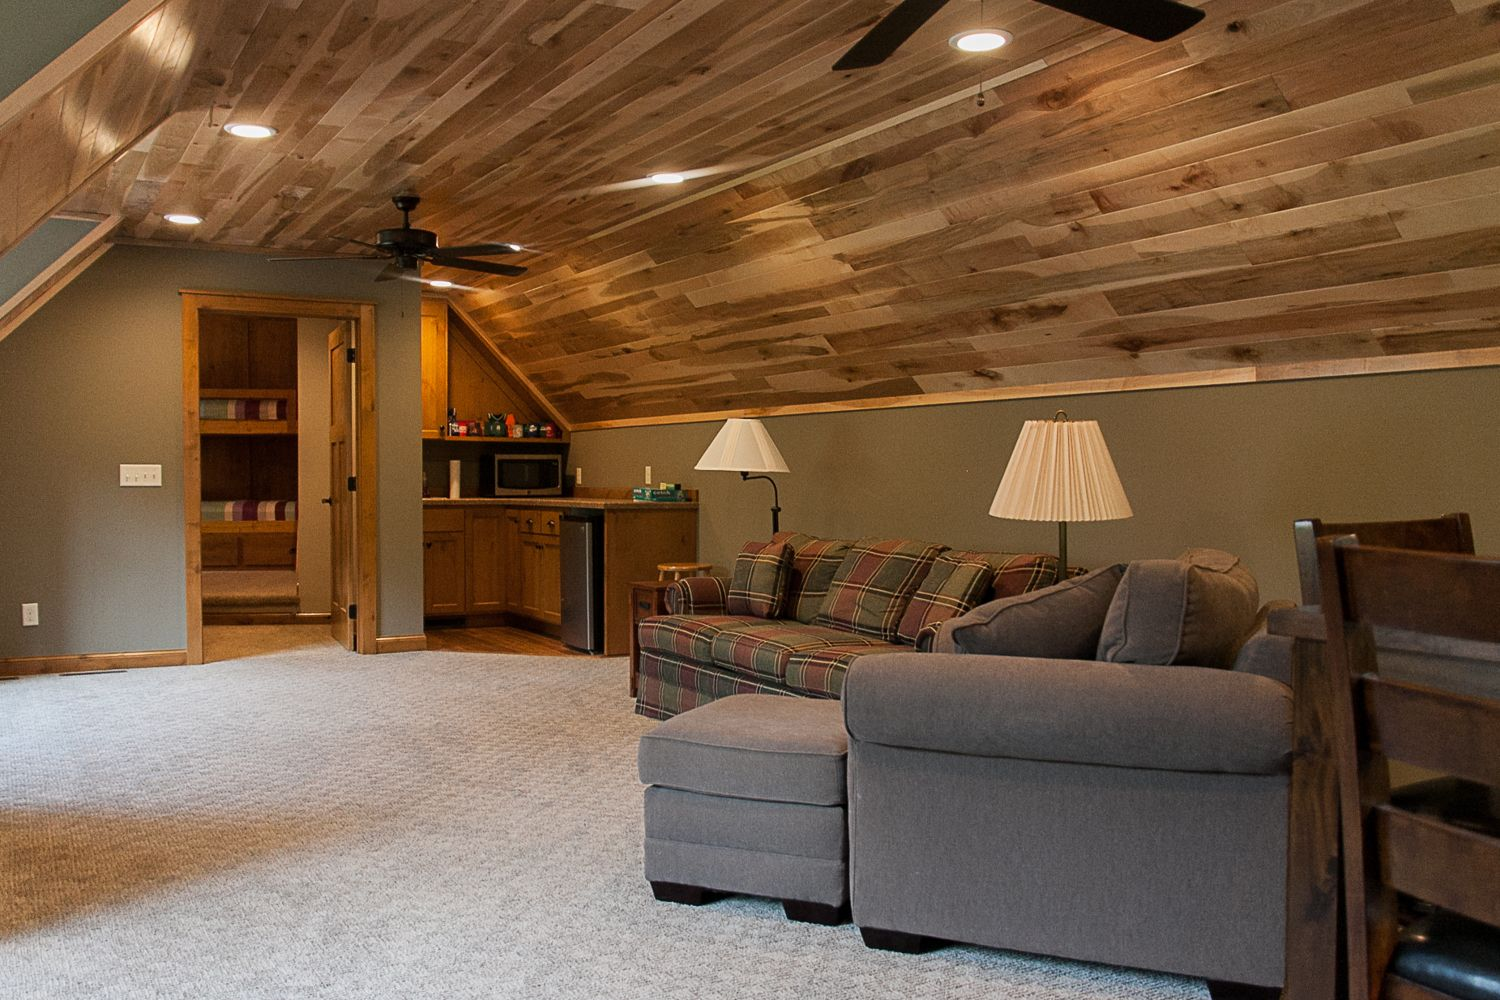 Hickory Ceiling Bonus Room. Kid Room Above Garage In A